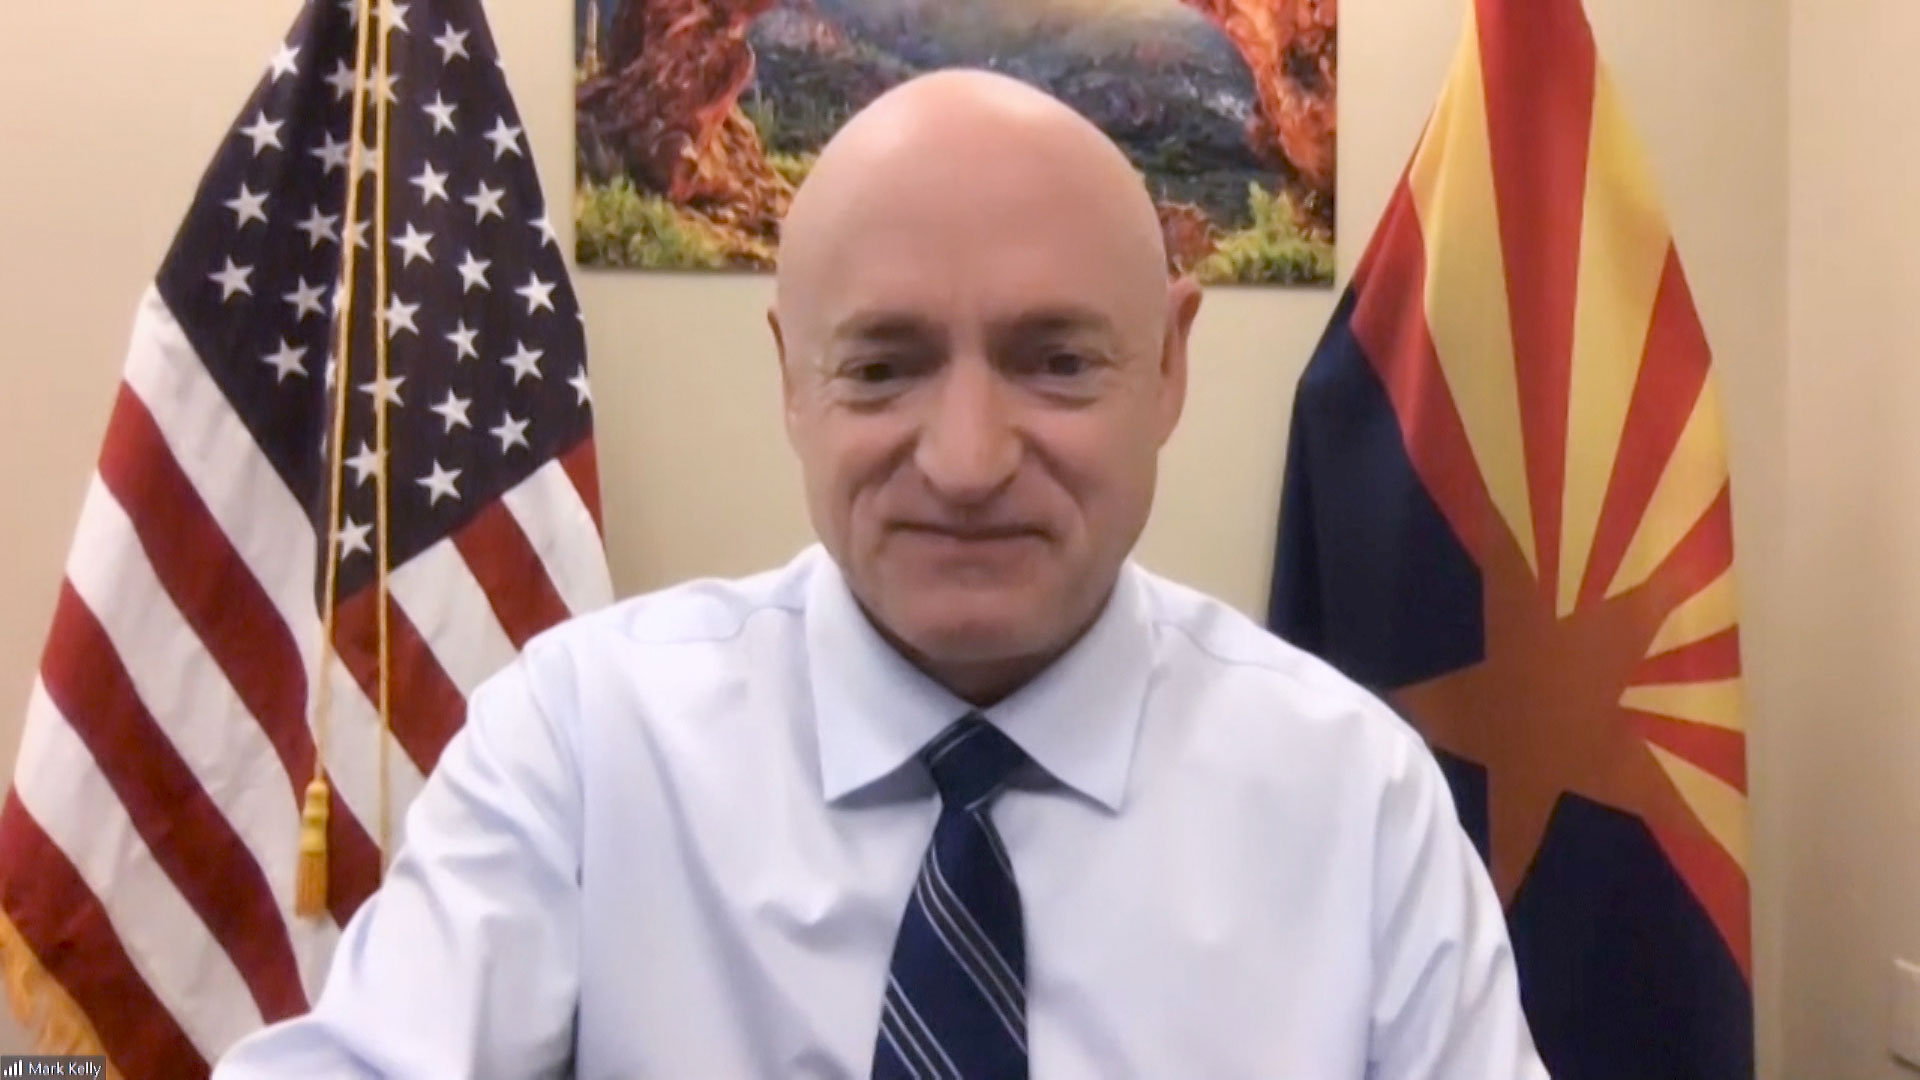 Democratic U.S. Sen. Mark Kelly during an interview with Arizona 360 from his office in Washington, D.C. on Dec. 10, 2020.